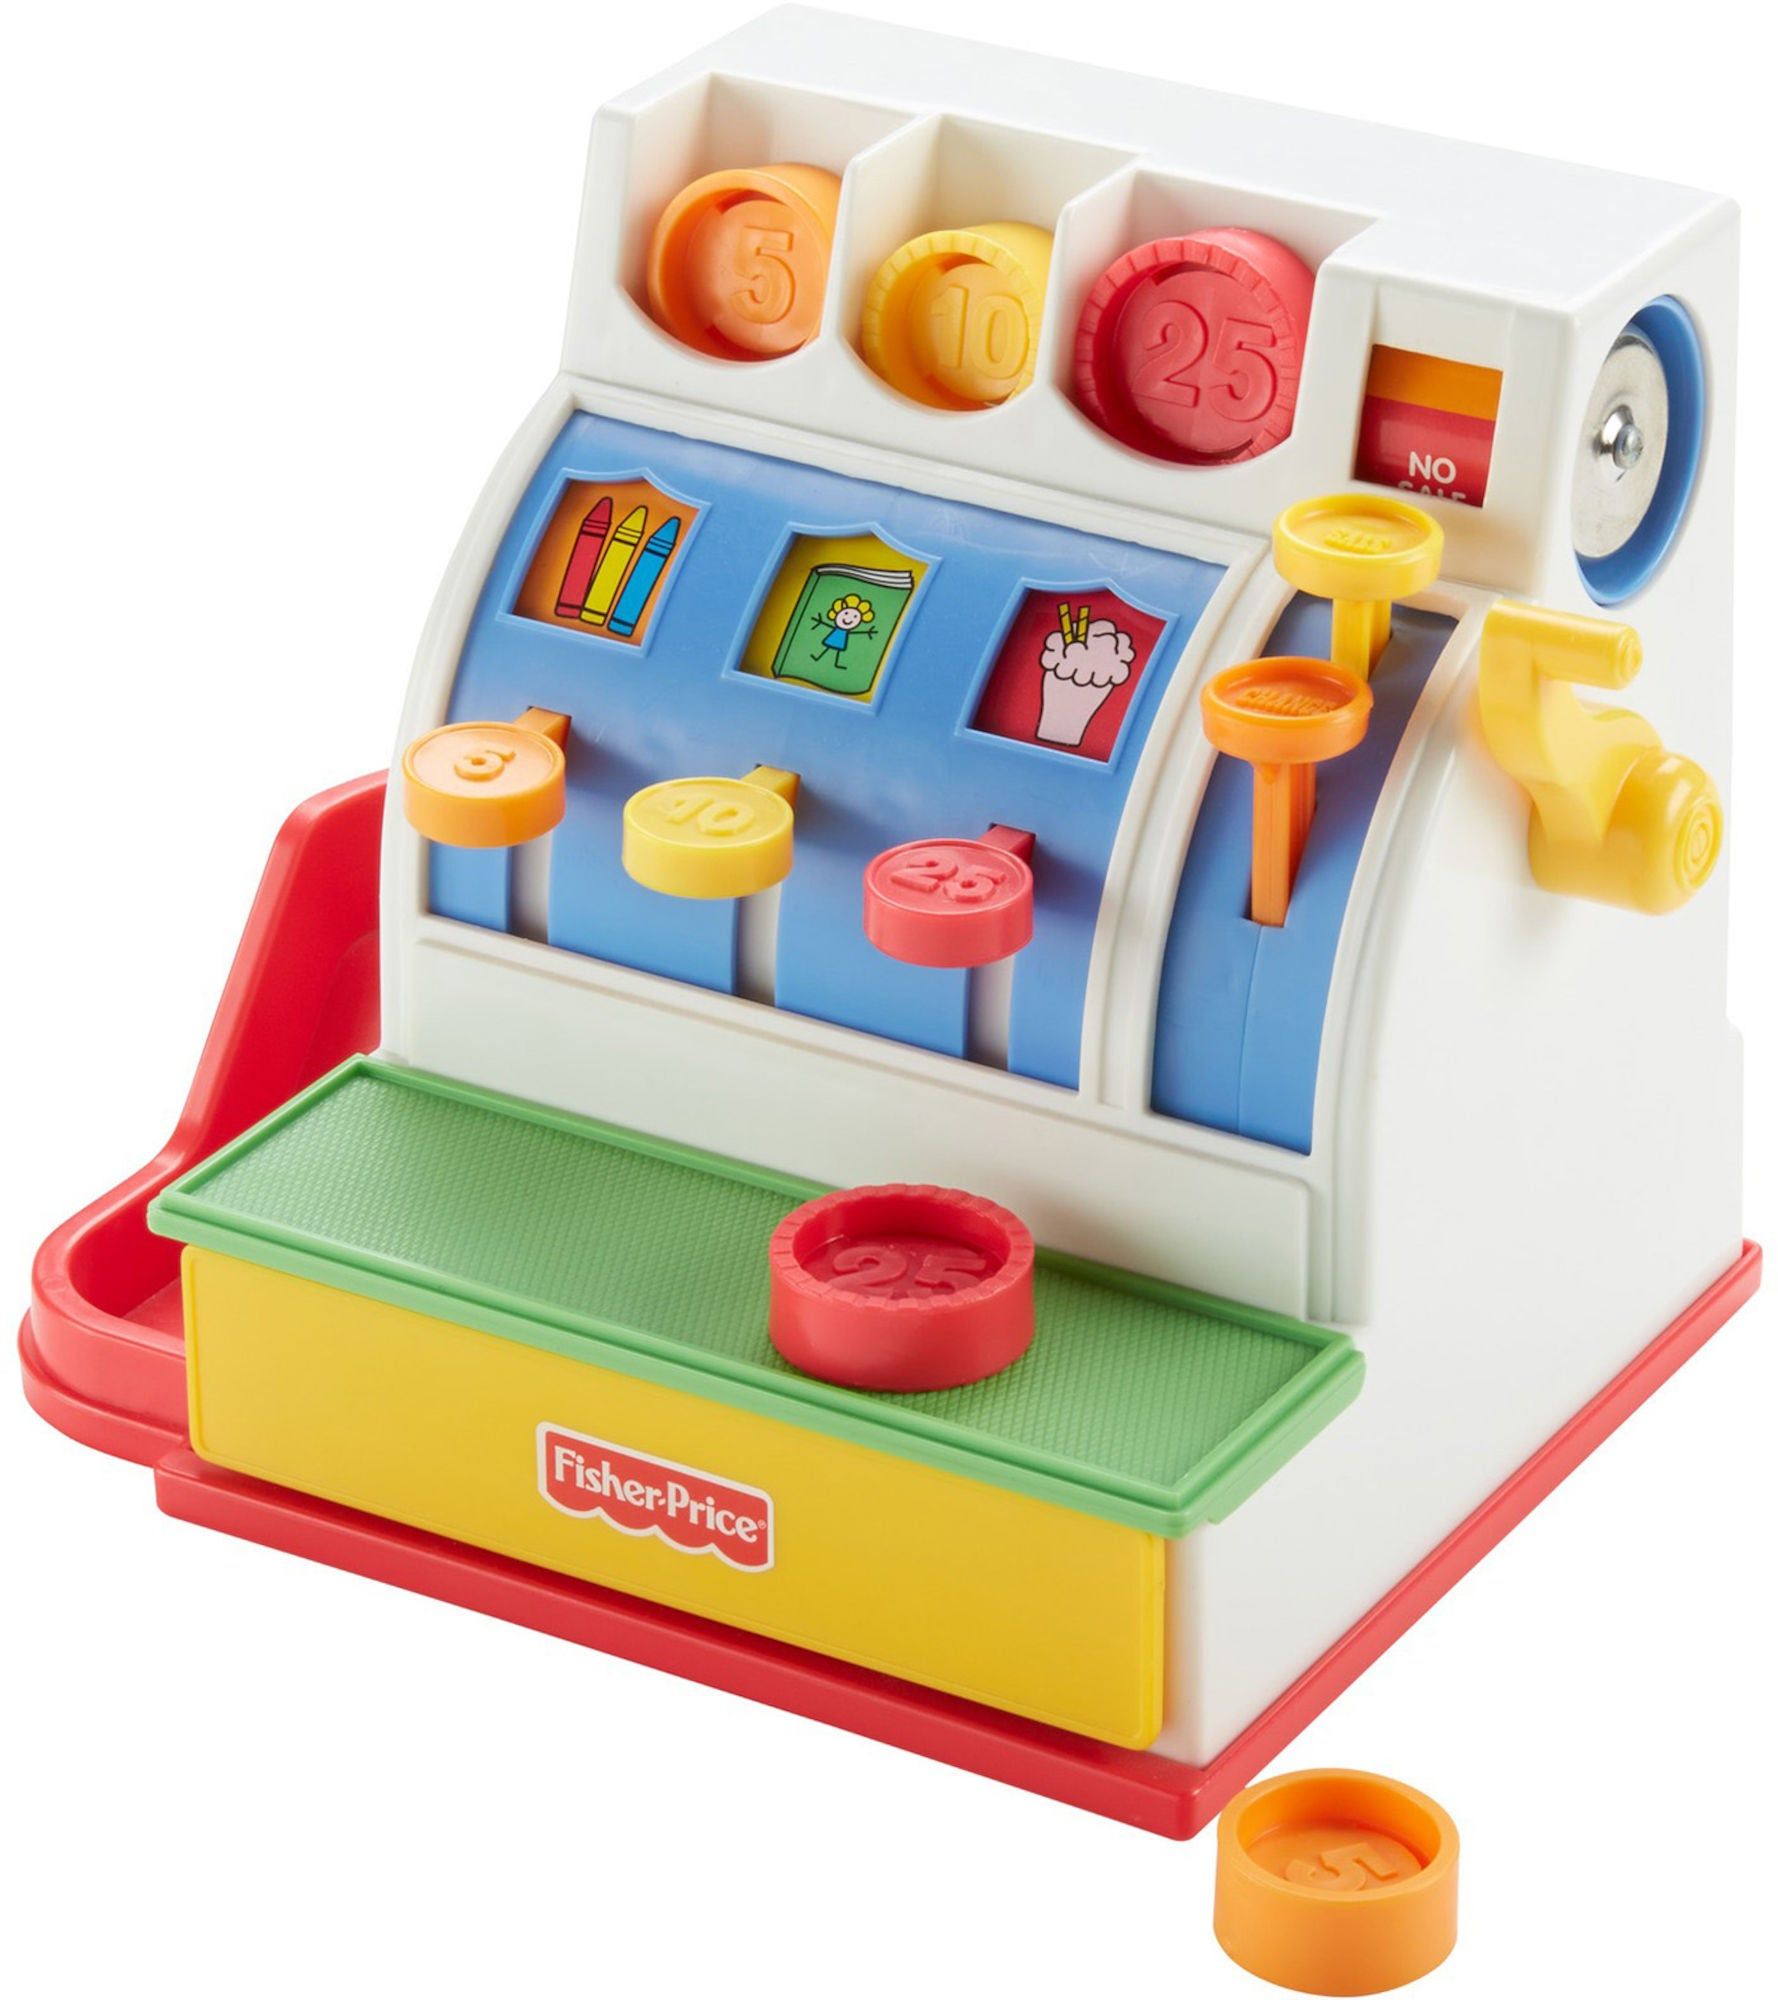 Fisher-Price Kassaapparat